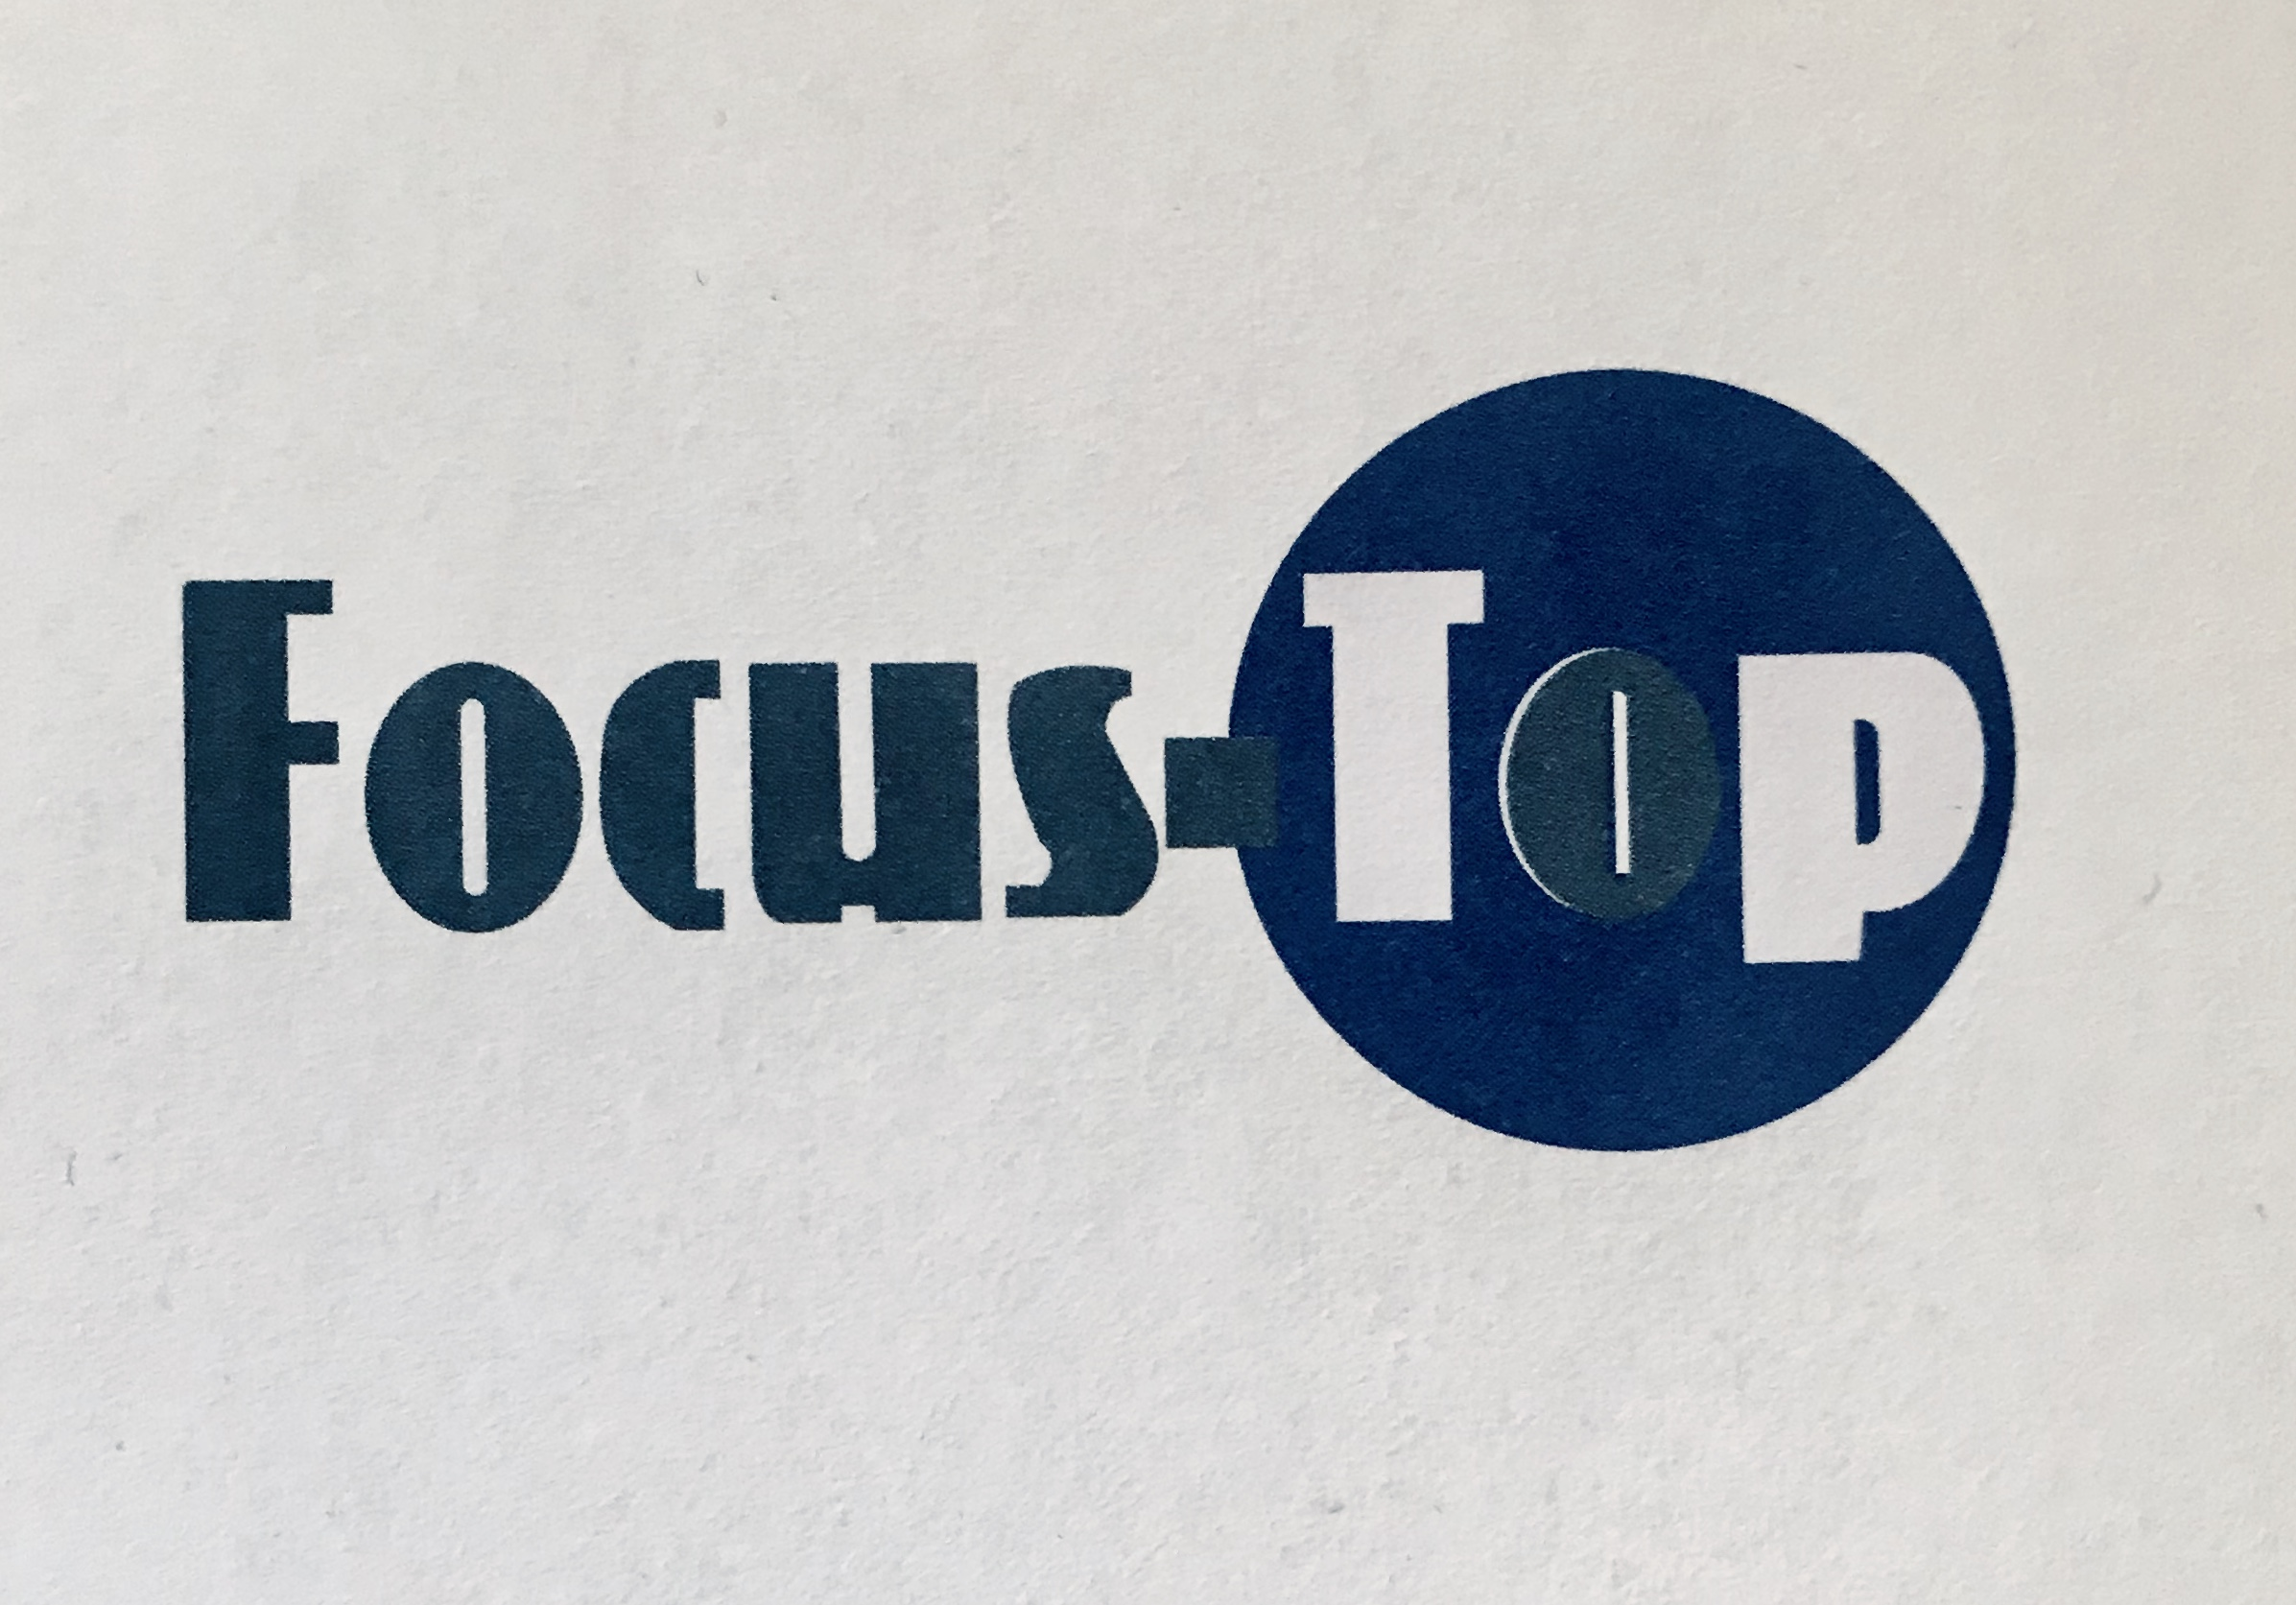 beijing focus-top.,ltd